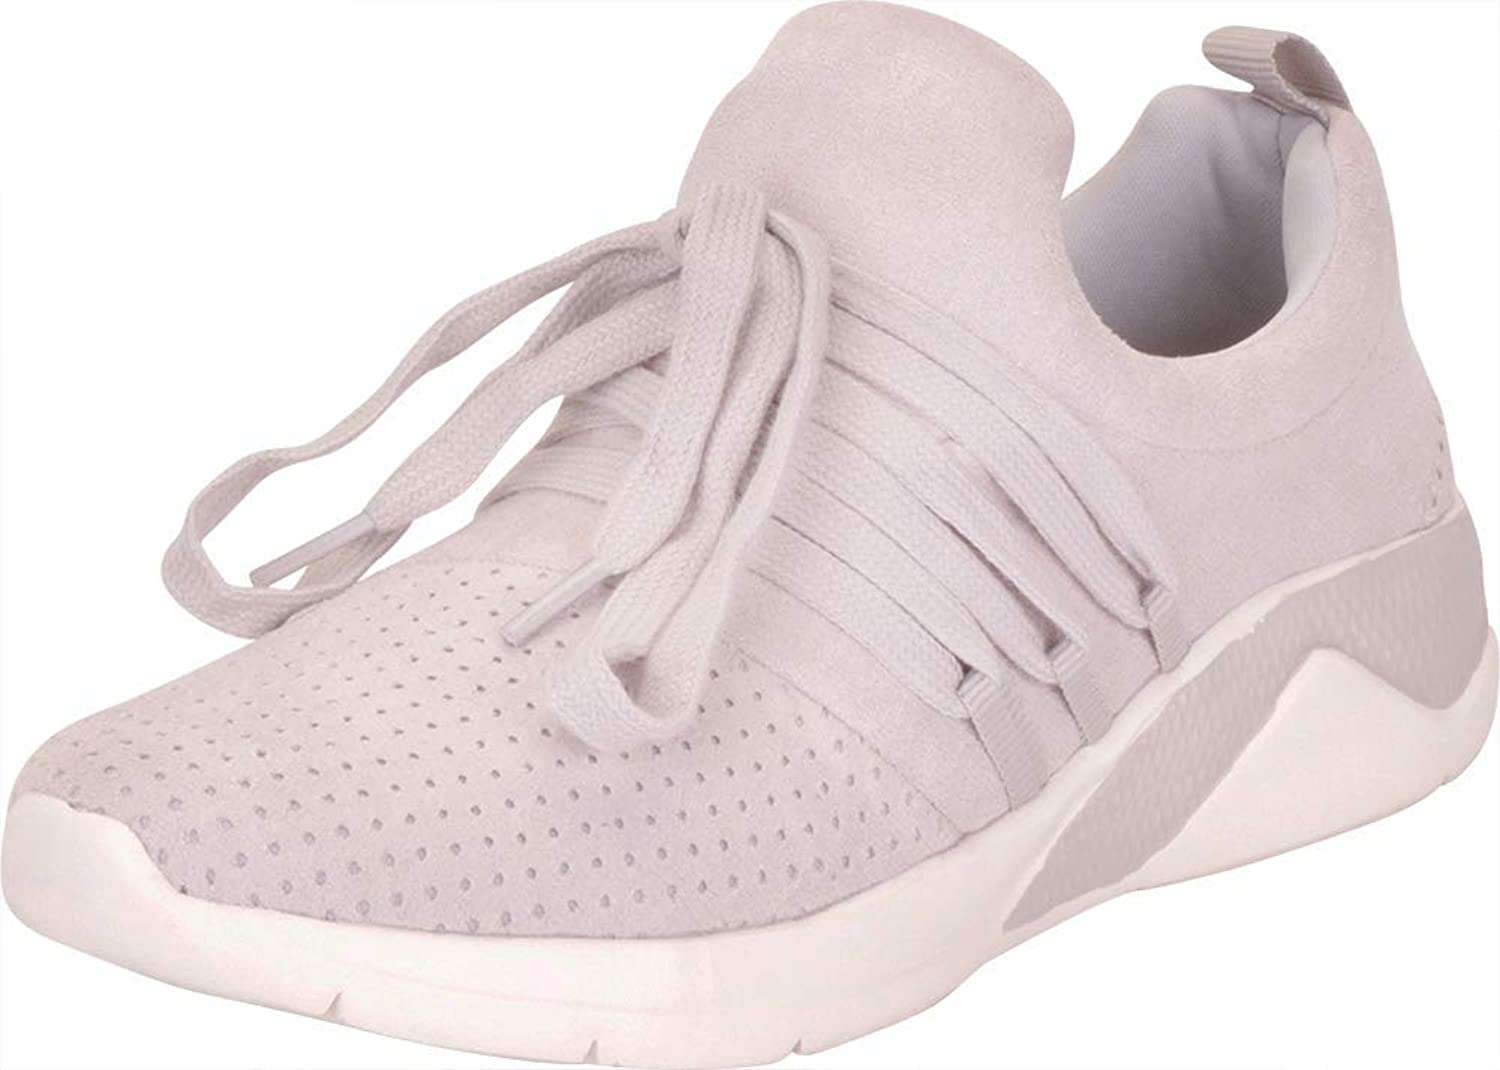 Cambridge Select Women's Low Top Lightweight Lace-Up Casual Sport Fashion Sneaker